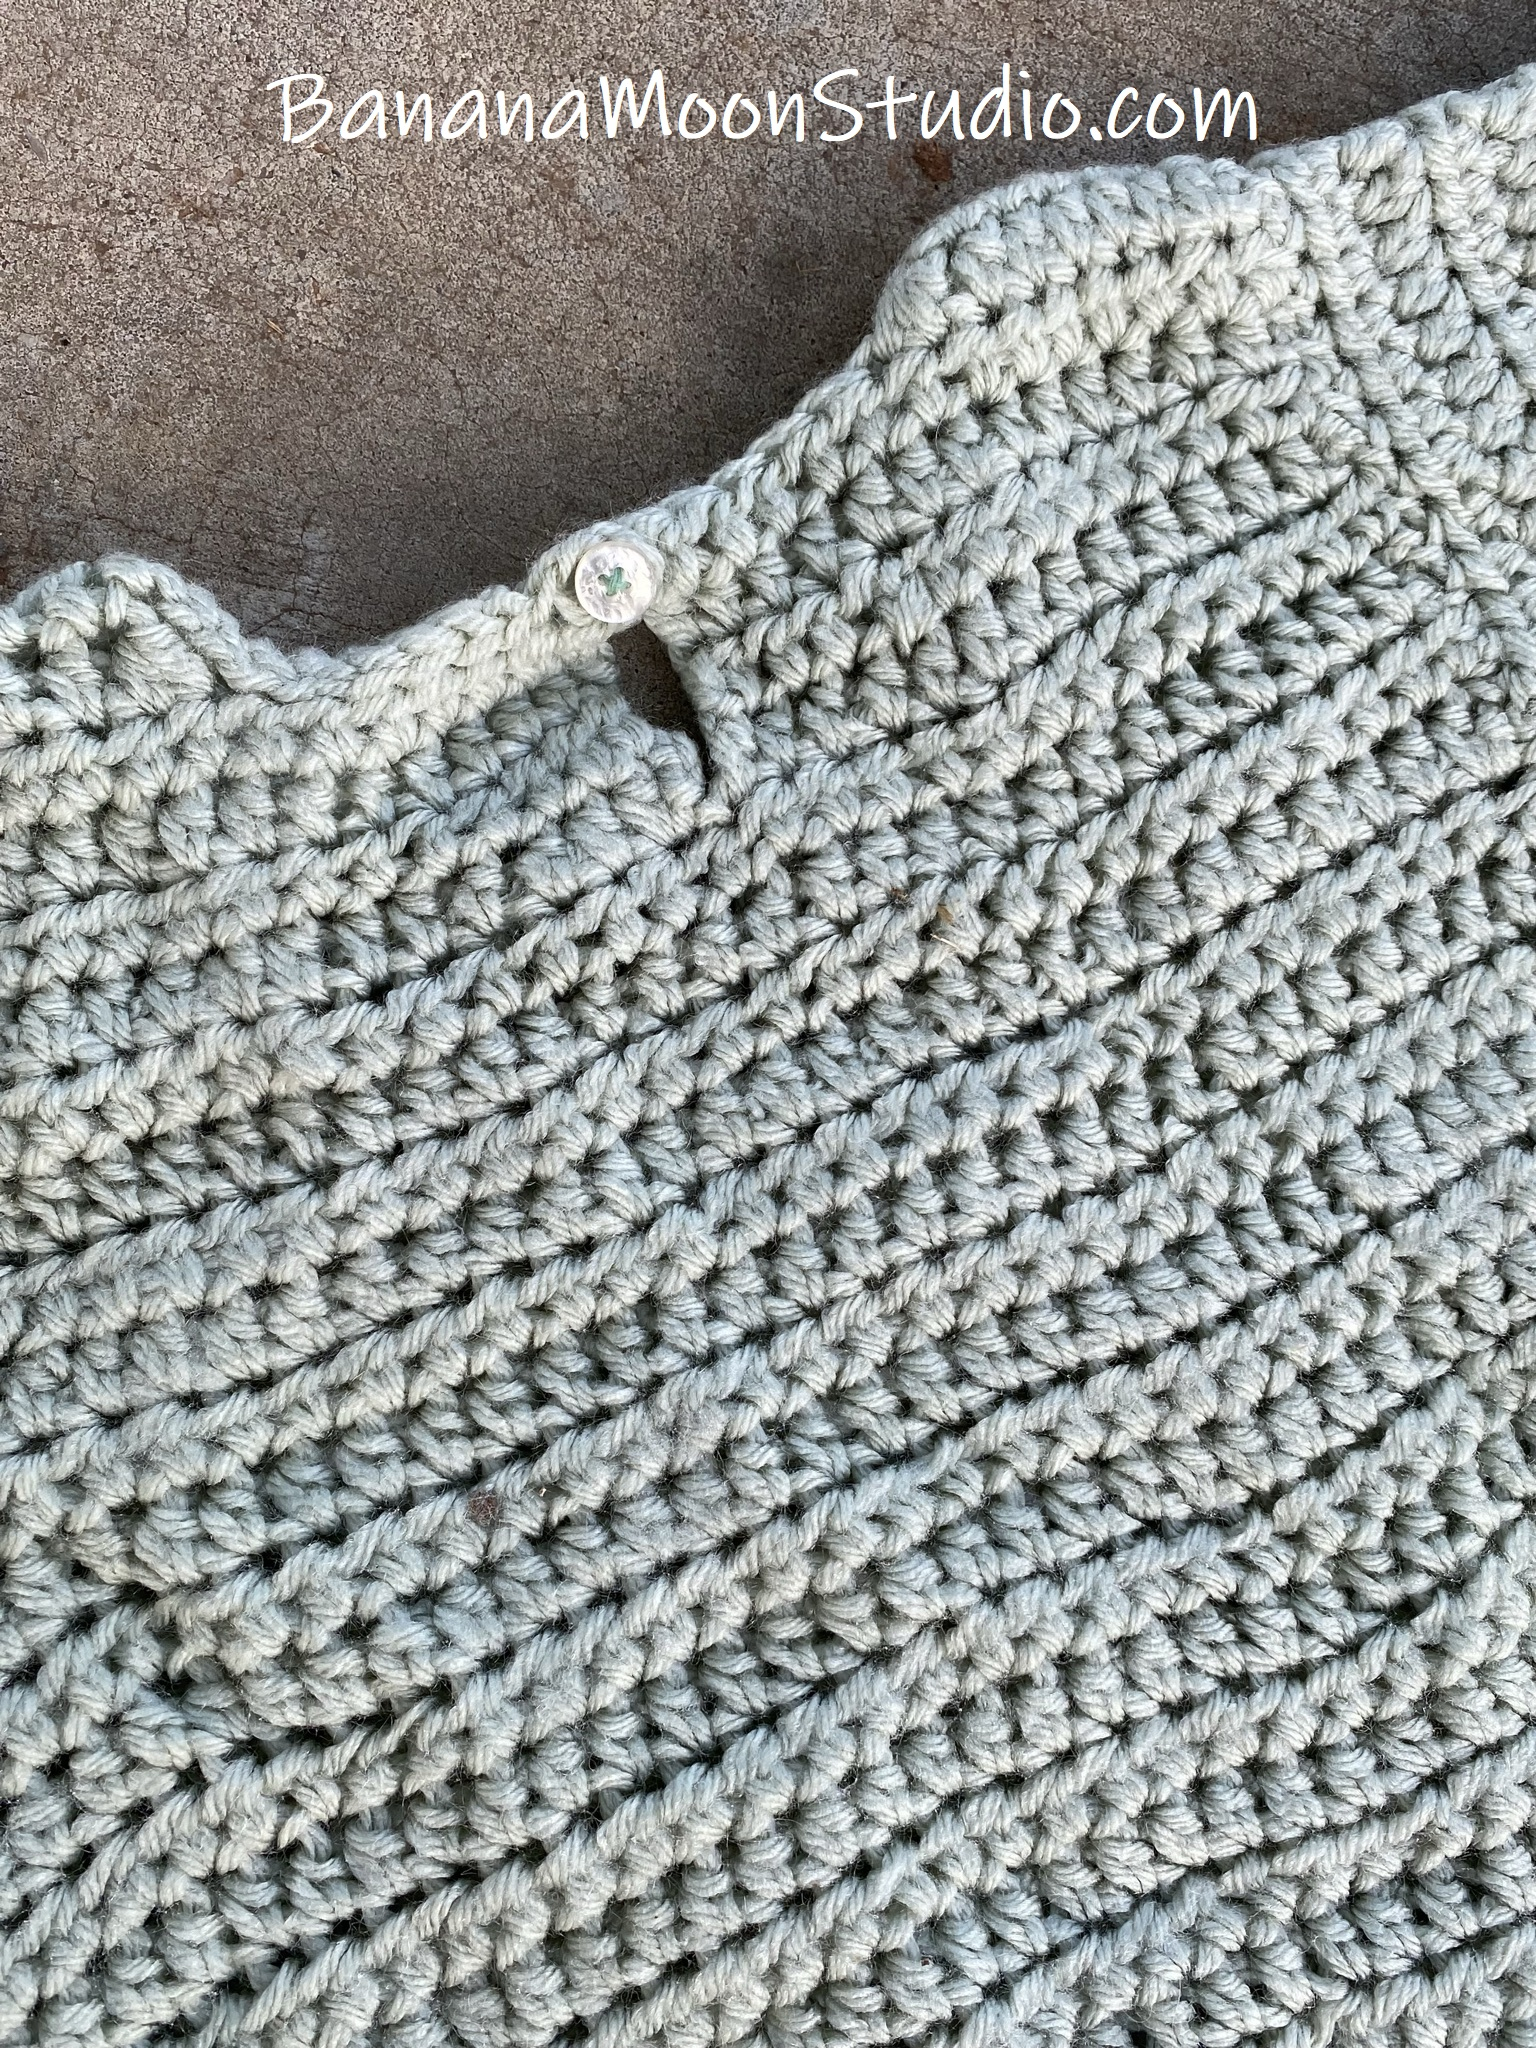 Back of a crochet top on a gray background.